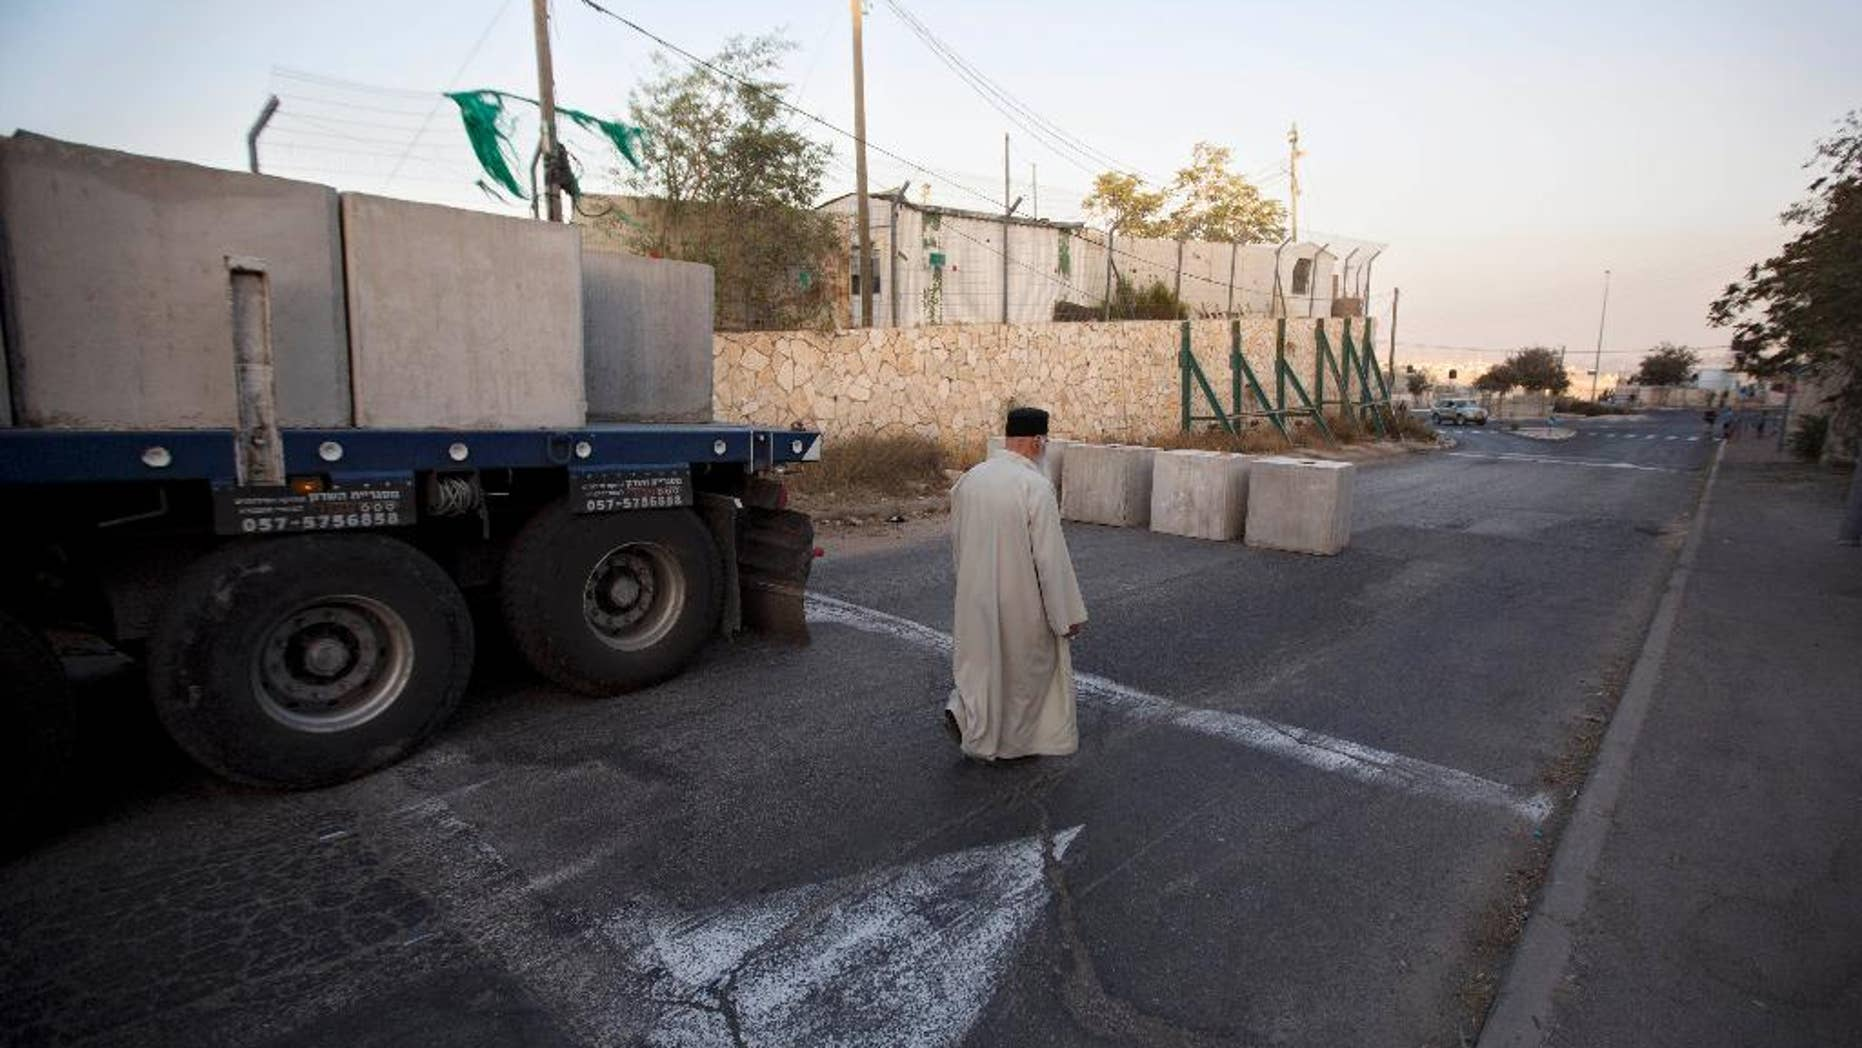 A Palestinian man walks past newly placed concrete blocks on the road at the entrance to the east Jerusalem neighborhood of Jabal Mukaber, Wednesday, Oct. 14, 2015. The Israeli military began deploying hundreds of troops in cities across the country on Wednesday to assist police forces in countering a wave of deadly Palestinian shooting and stabbing attacks that have created panic across the country. (AP Photo/Sebastian Scheiner)